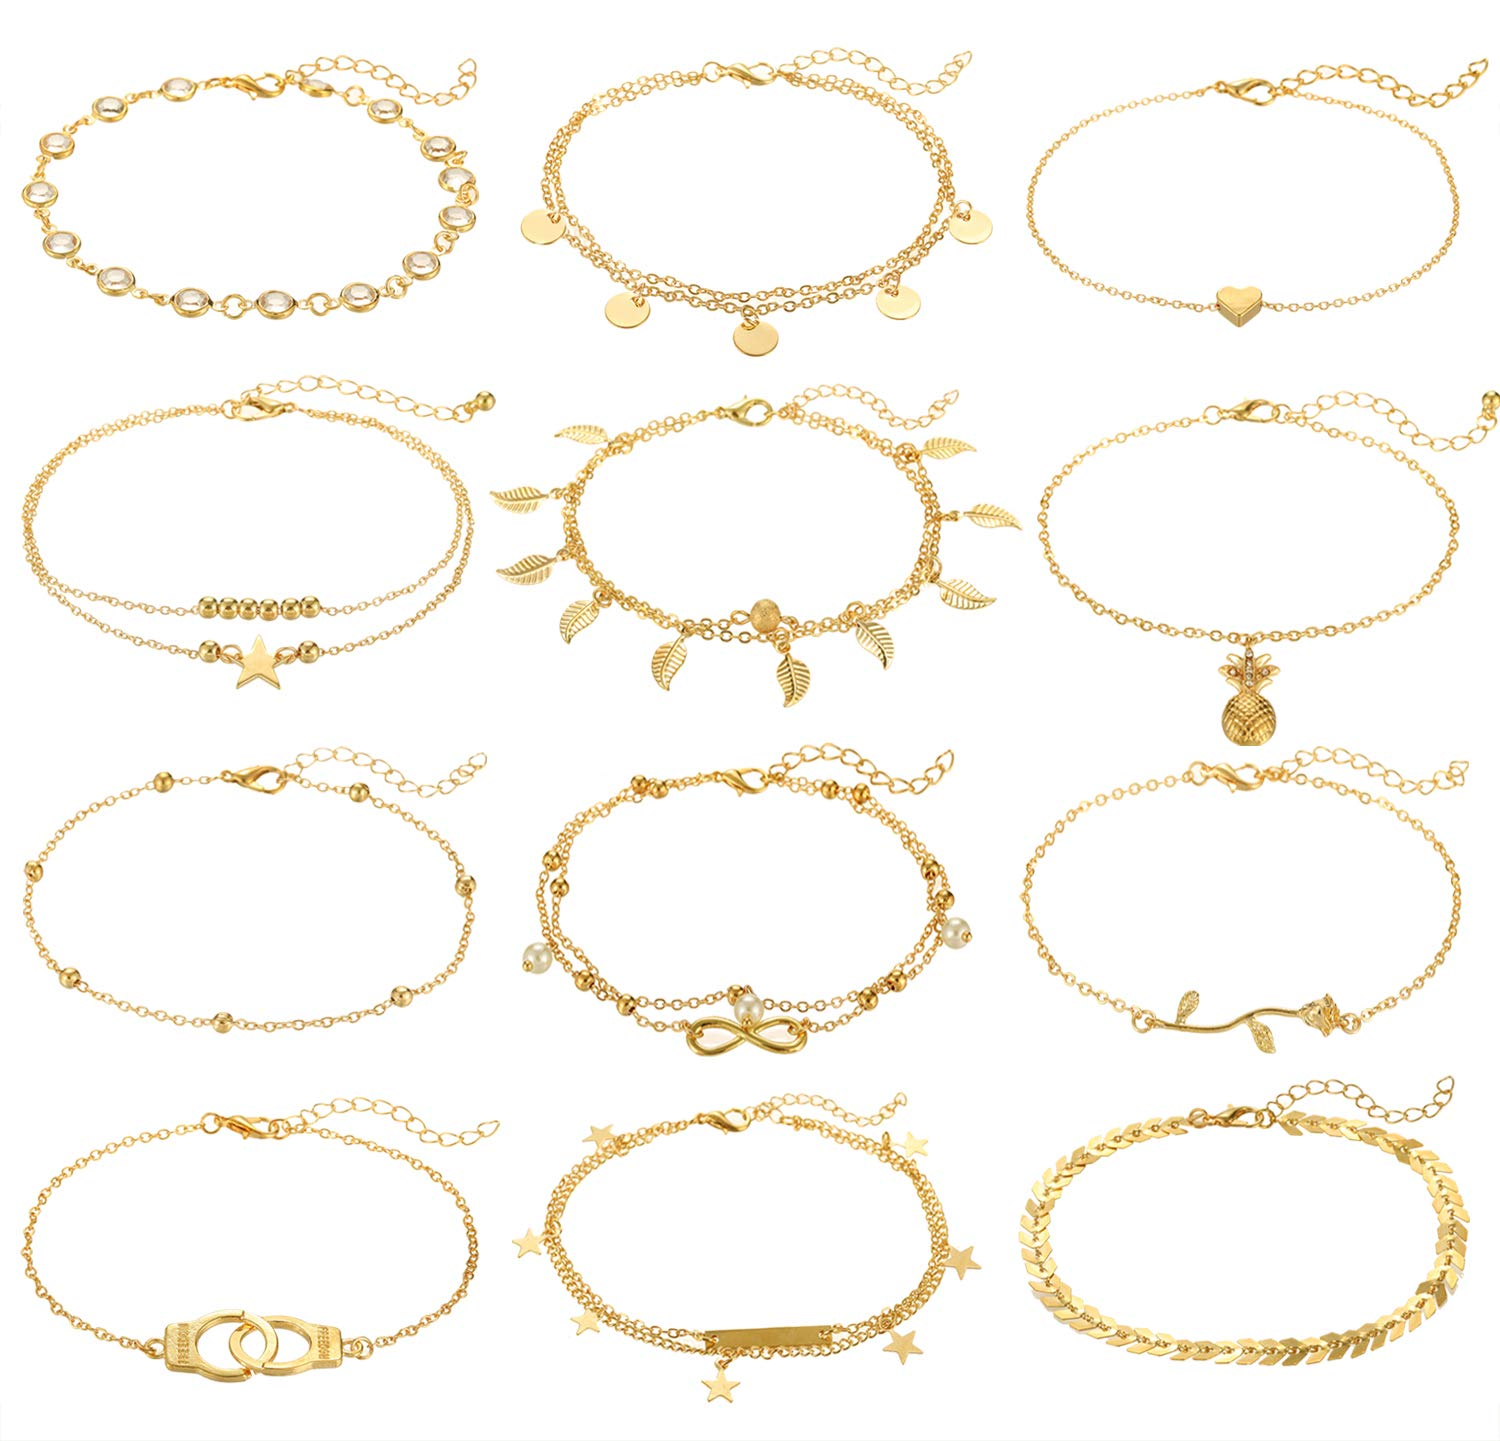 Anlsen 12Pcs Anklets for Women Girls Silver Gold Ankle Bracelets Set Boho Layered Beach Adjustable Chain Anklet Foot Jewelry by Anlsen